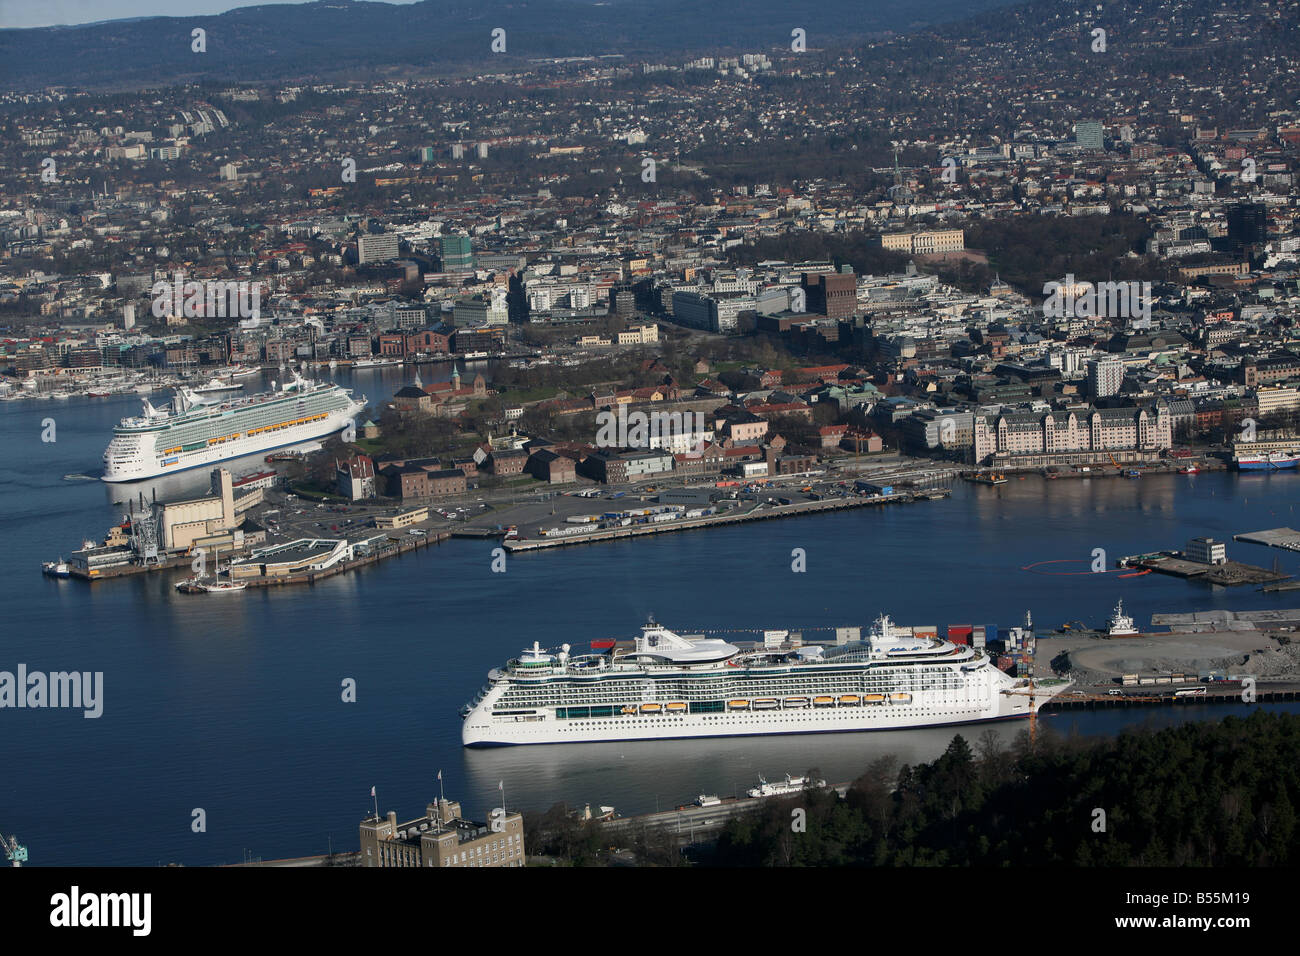 Two Cruise ships in the port of Oslo, aerial photo - Stock Image